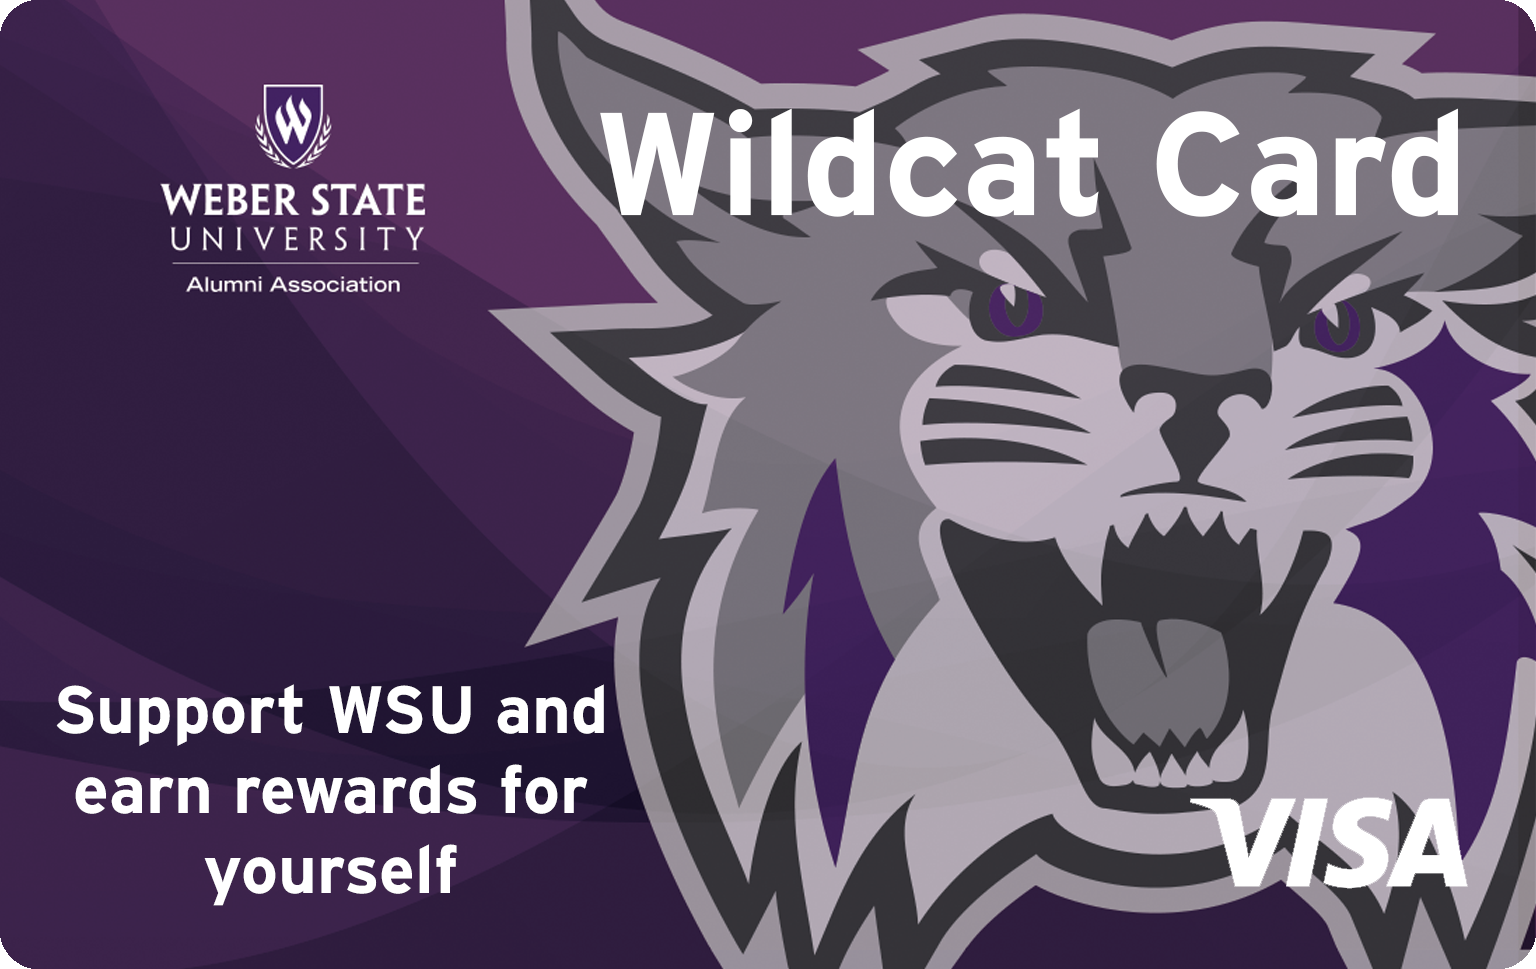 Wildcat Card